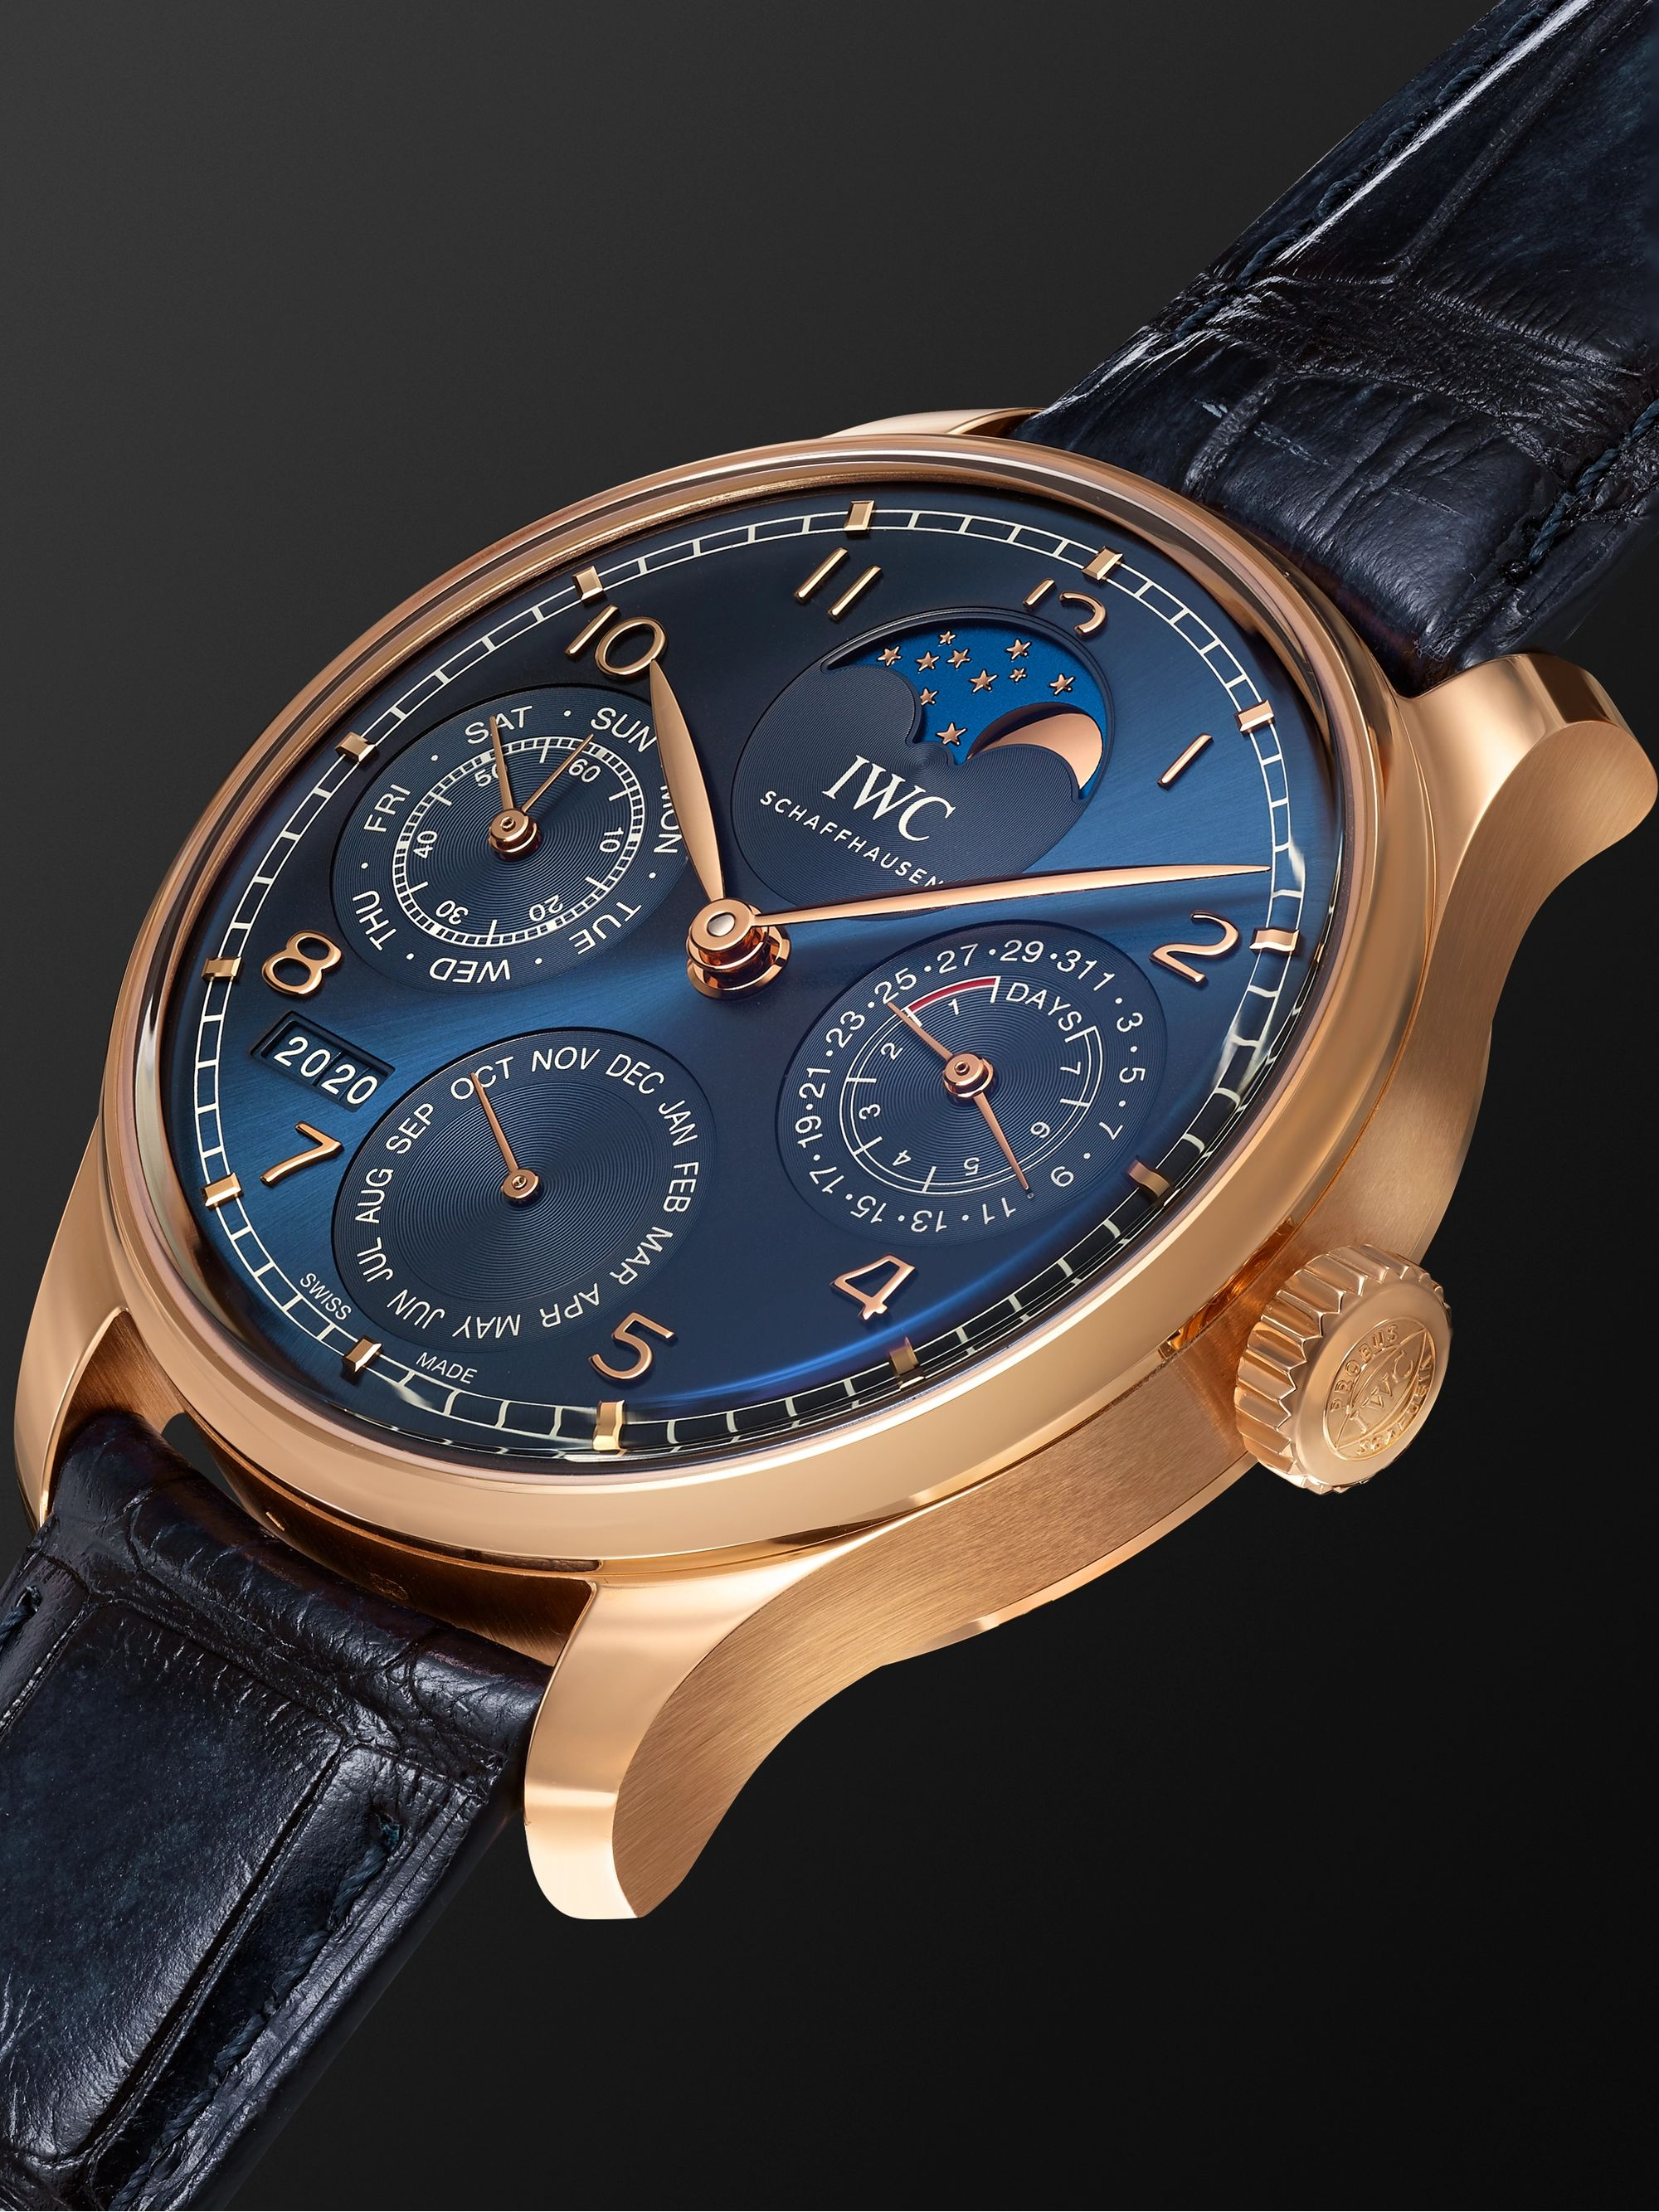 IWC SCHAFFHAUSEN Portugieser Perpetual Calendar Automatic Boutique Edition 44.2mm 18-Karat Armor Gold and Alligator Watch, Ref. No. IW503312